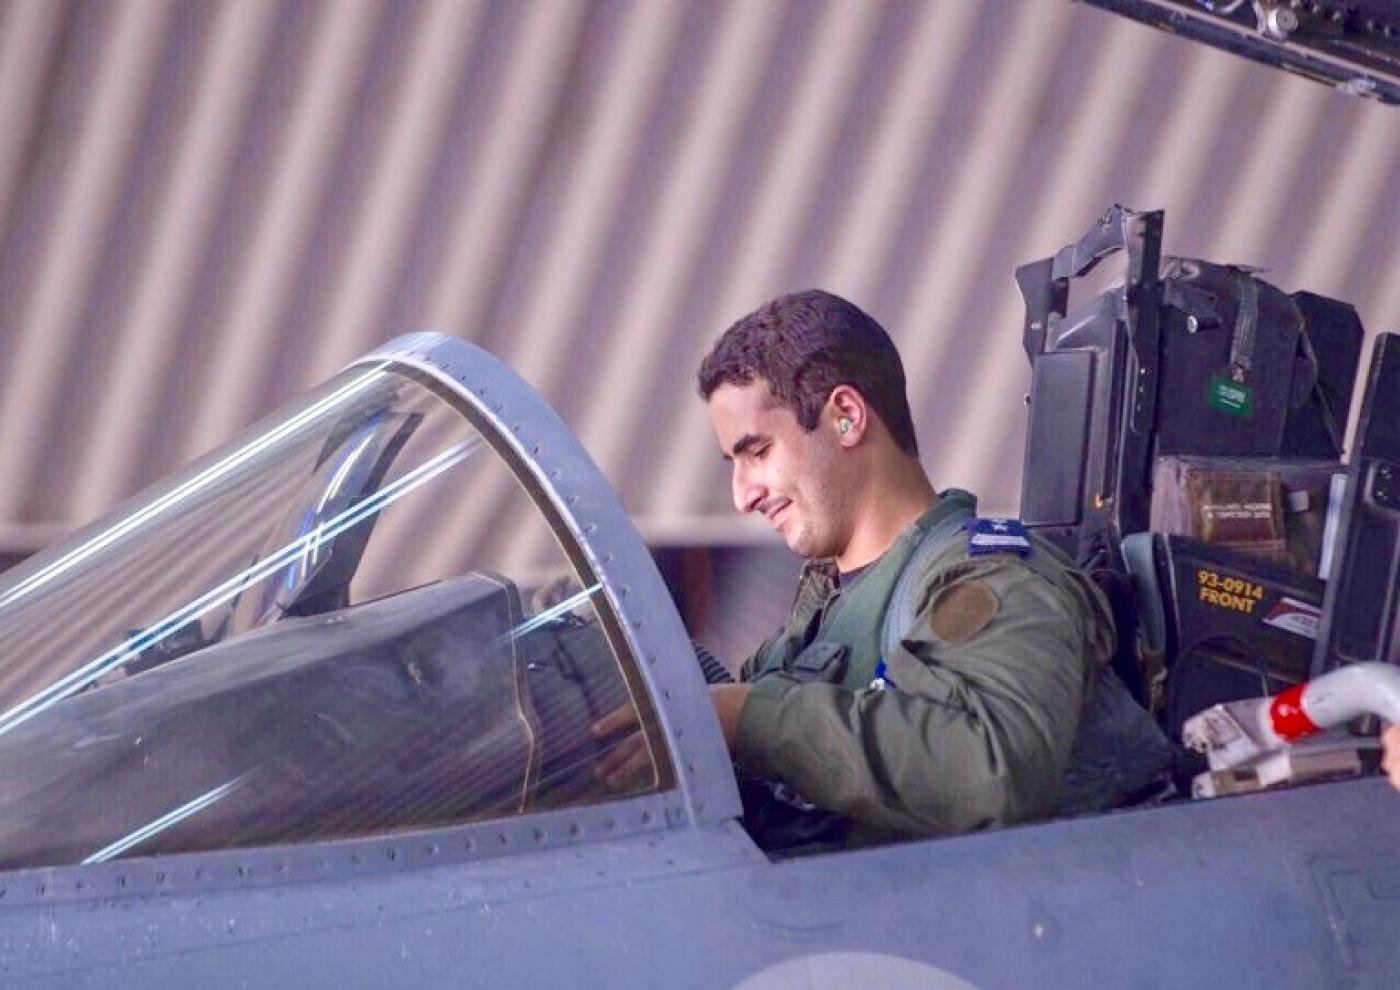 Saudi air force pilot, son of King Salman, appointed envoy to US